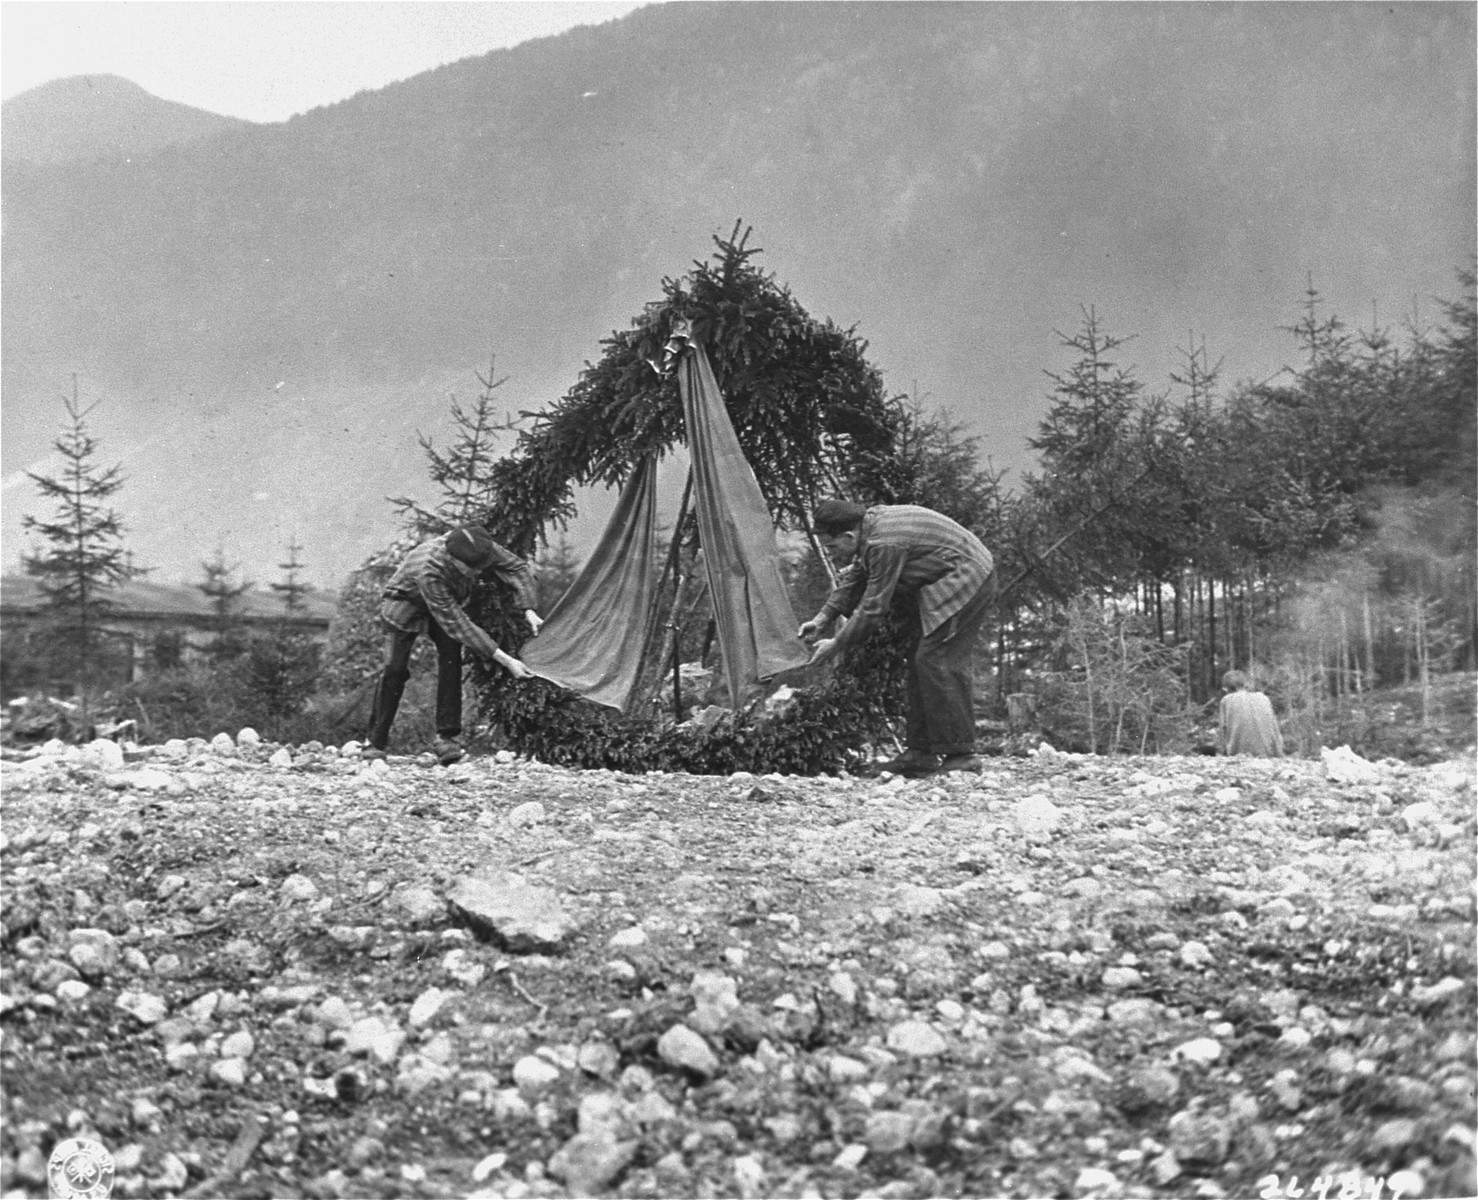 Survivors place a wreath at the site of a mass grave in the Ebensee concentration camp.